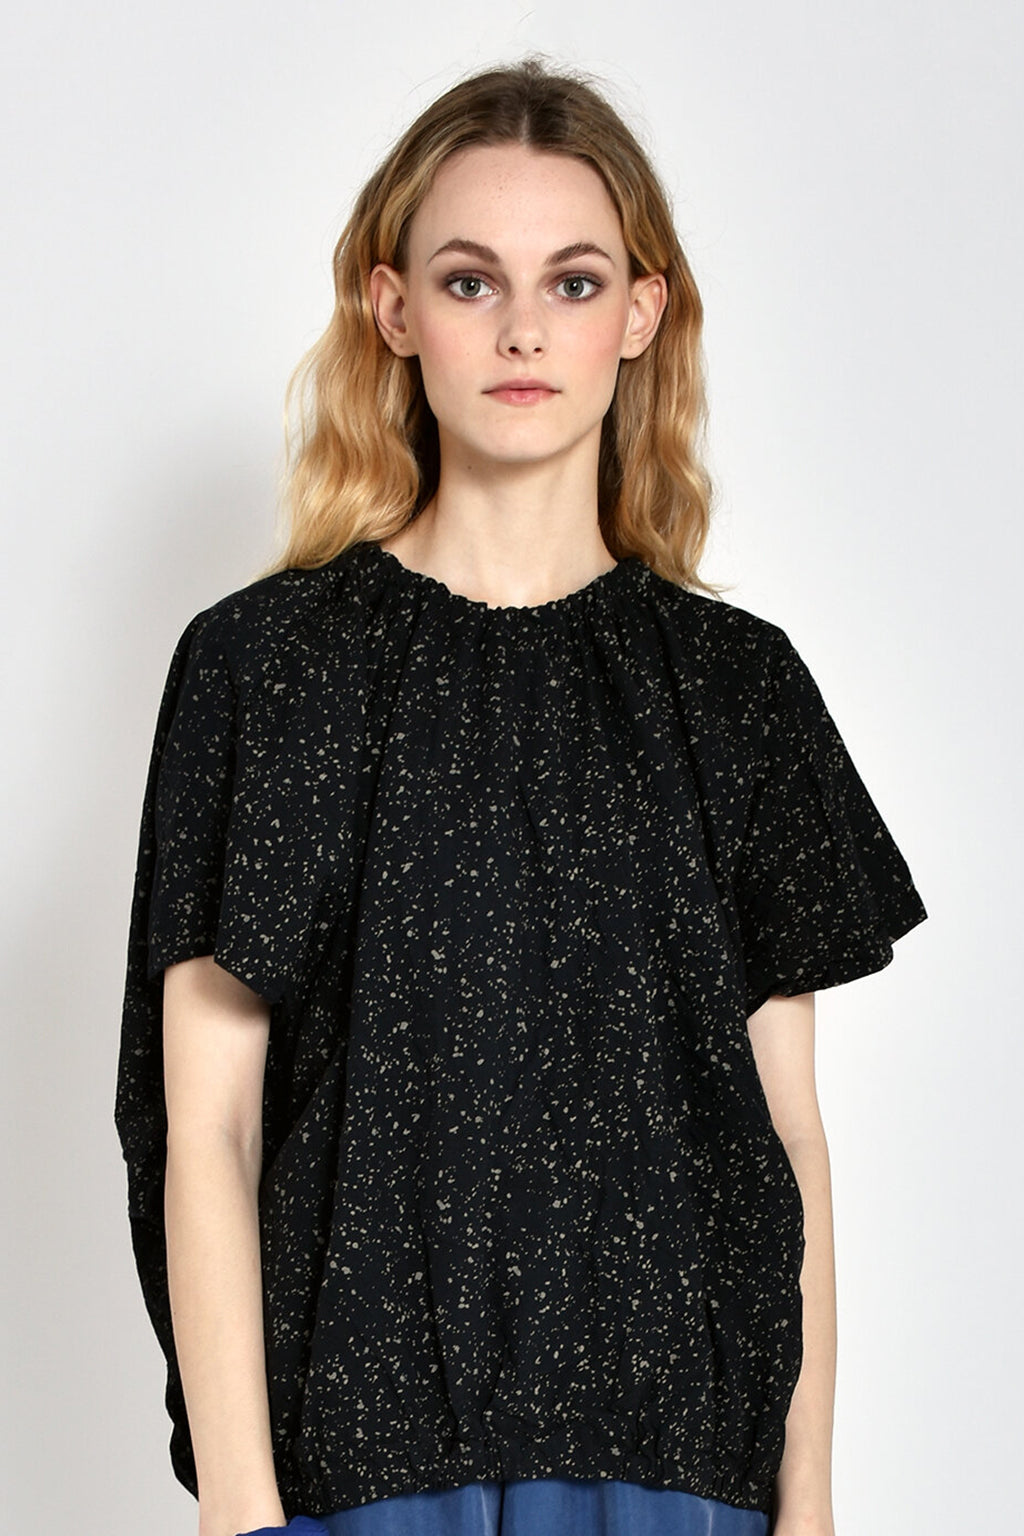 Printed Nina Blouse in Black Speckle